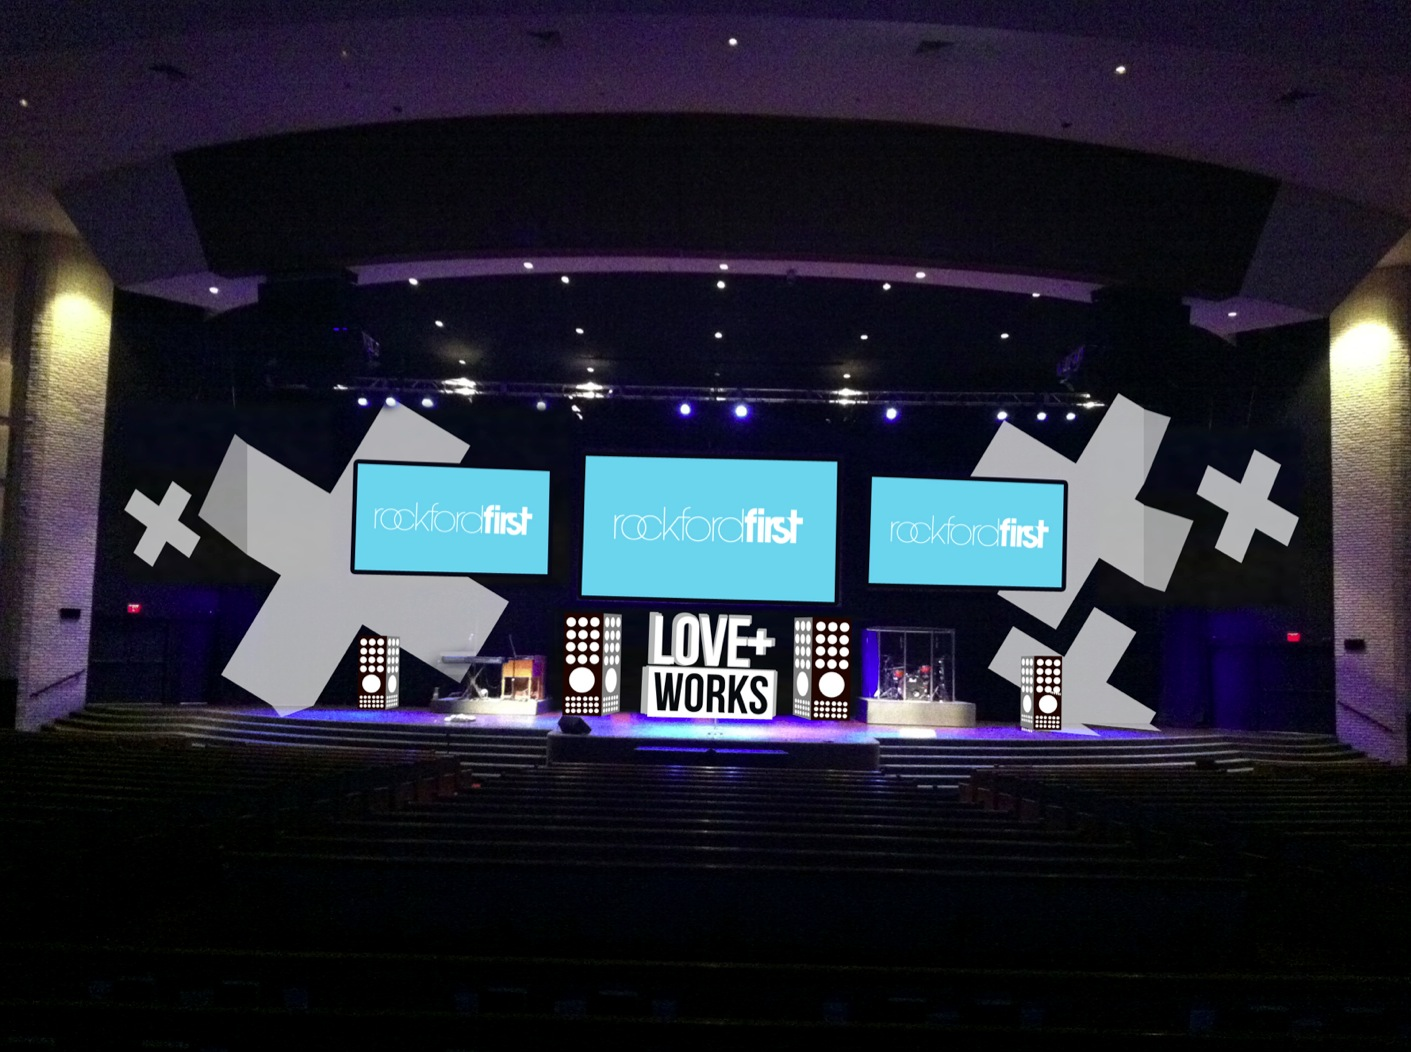 3d coroplast church stage design ideas